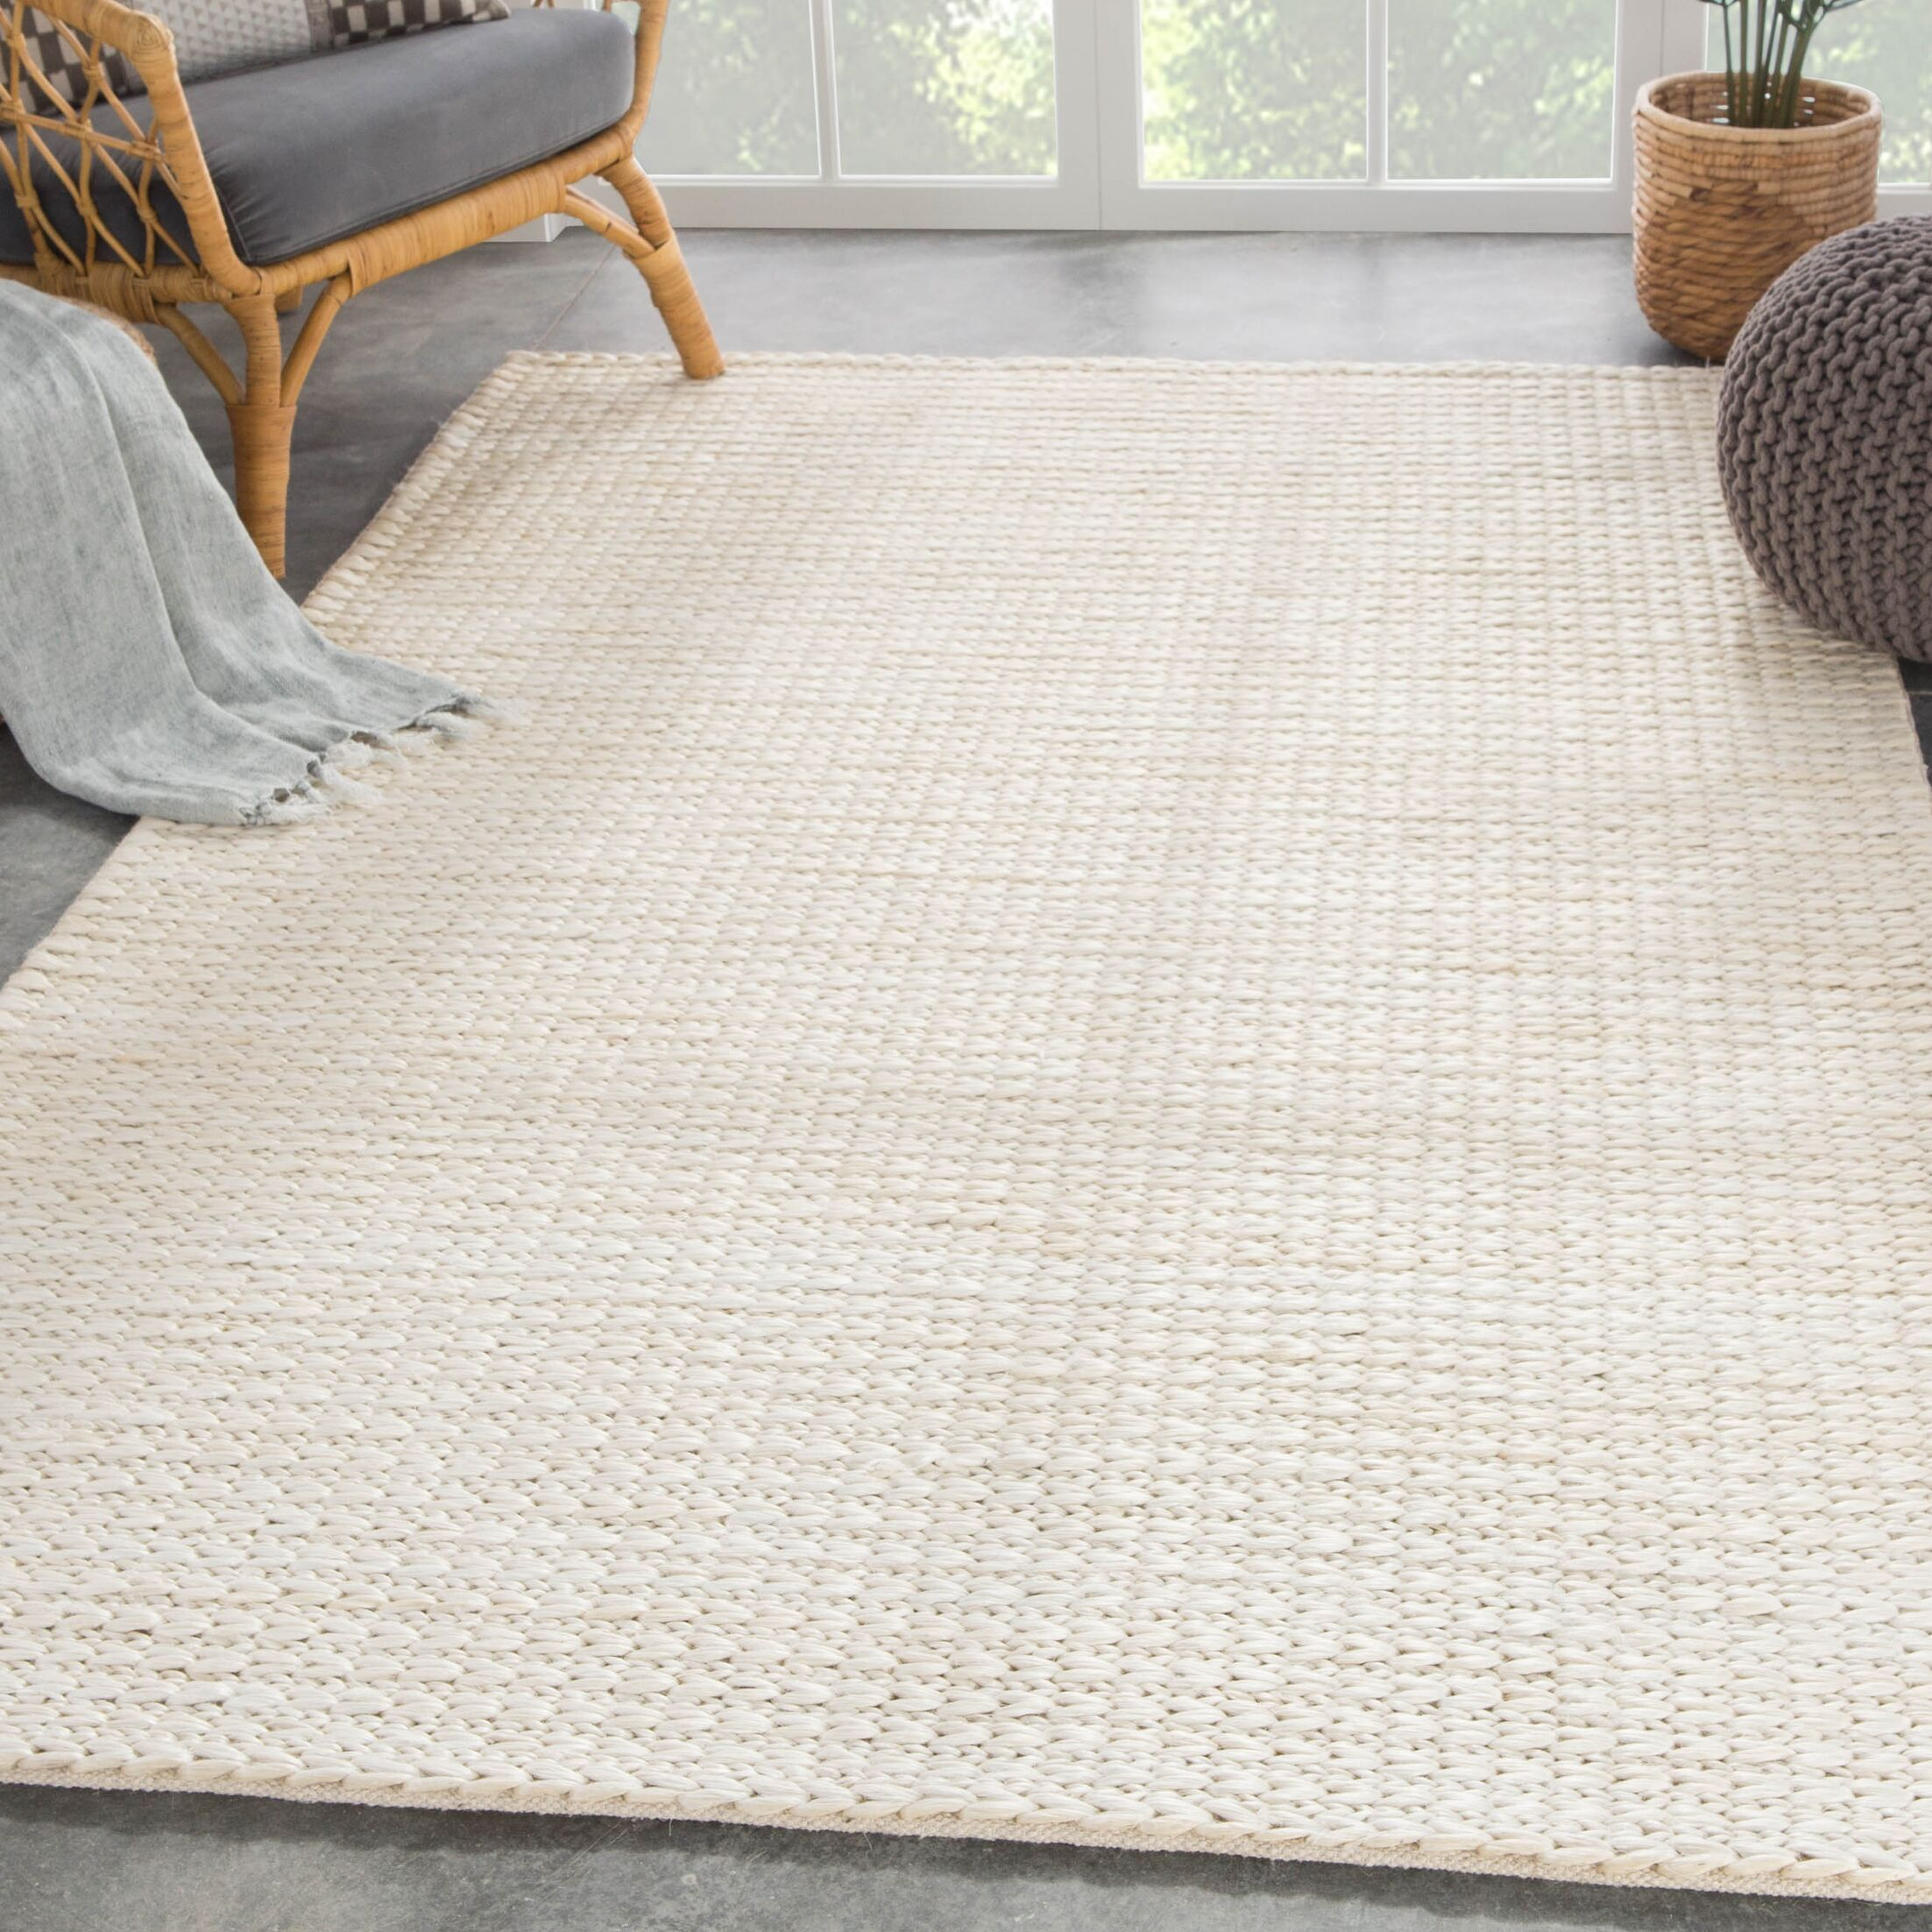 Giselle Natural Solid Hand Woven White Area Rug Rug Size: Rectangle 8' x 10'